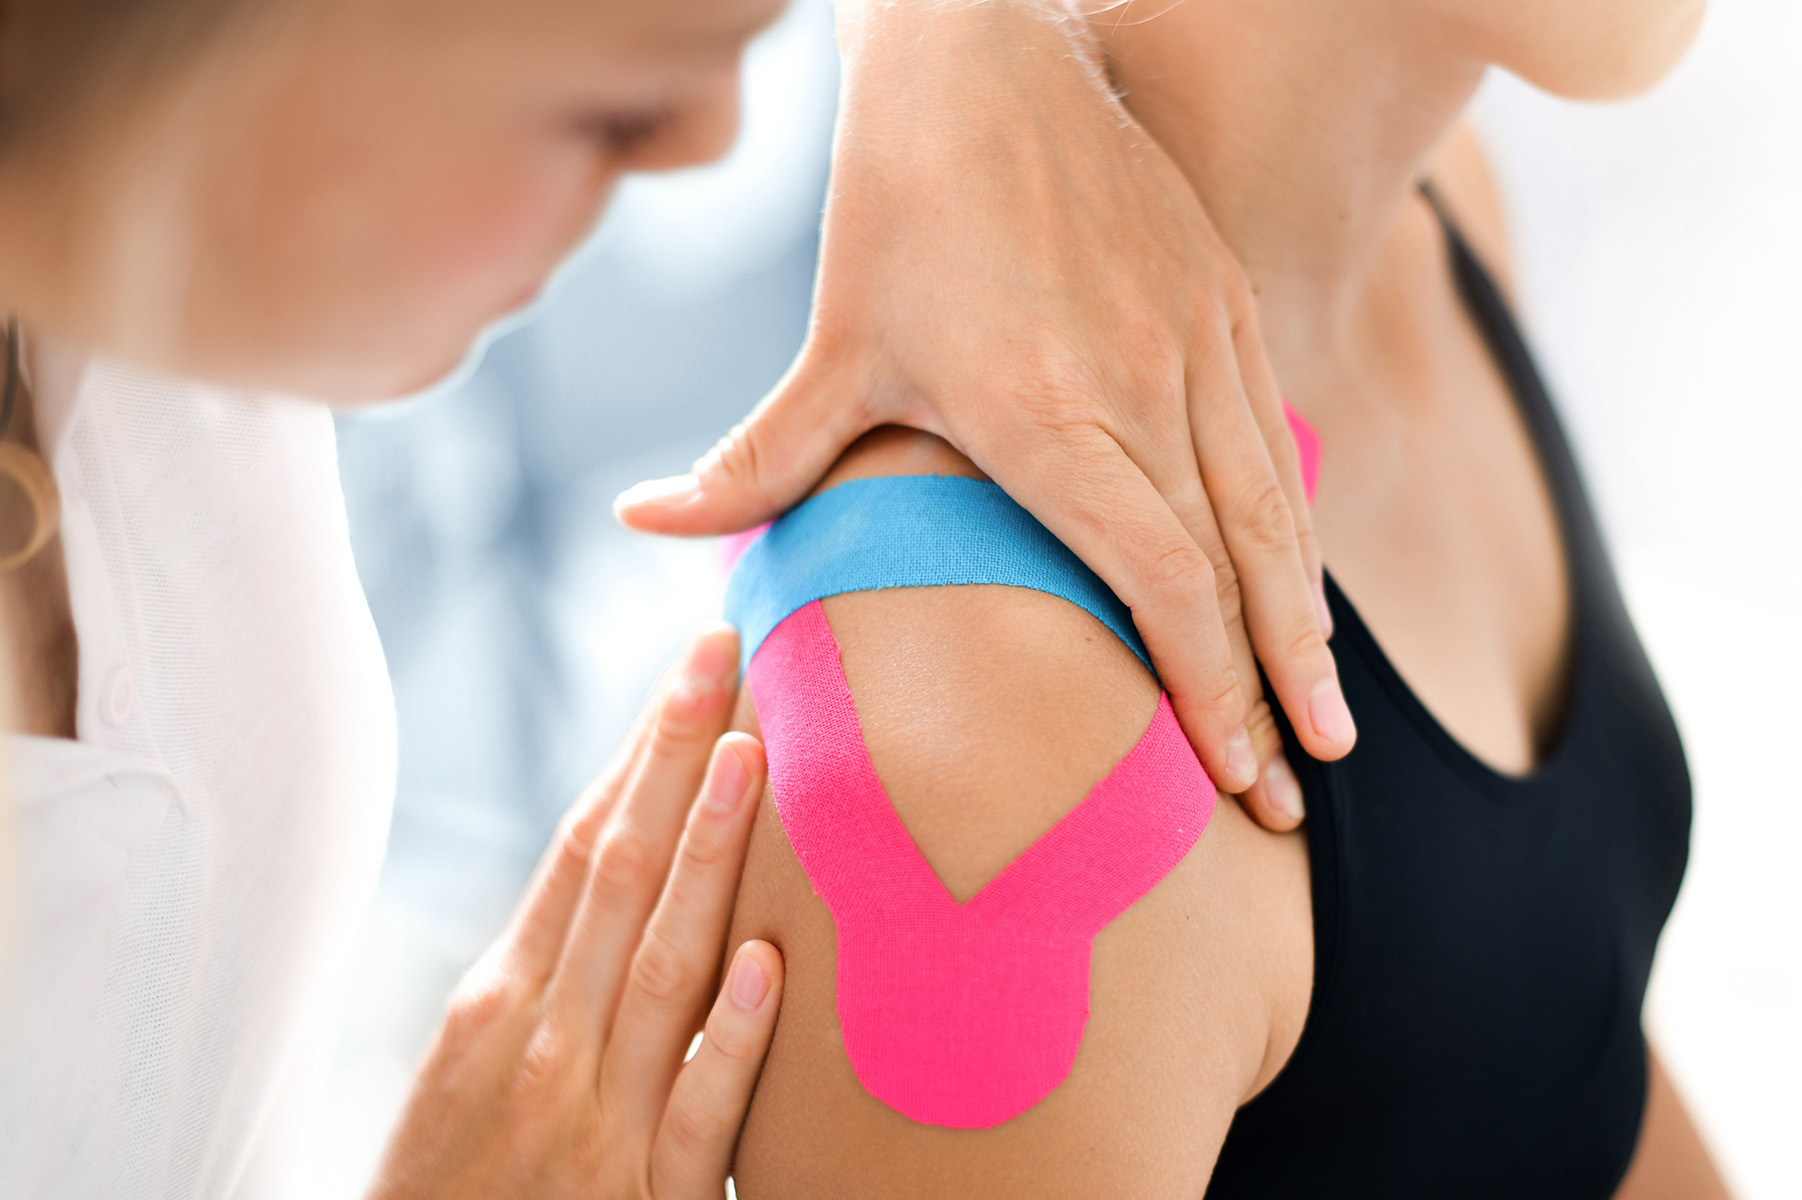 pilates instructor applying pink and blue kinesiology tape to a shoulder of a woman in a black sports bra